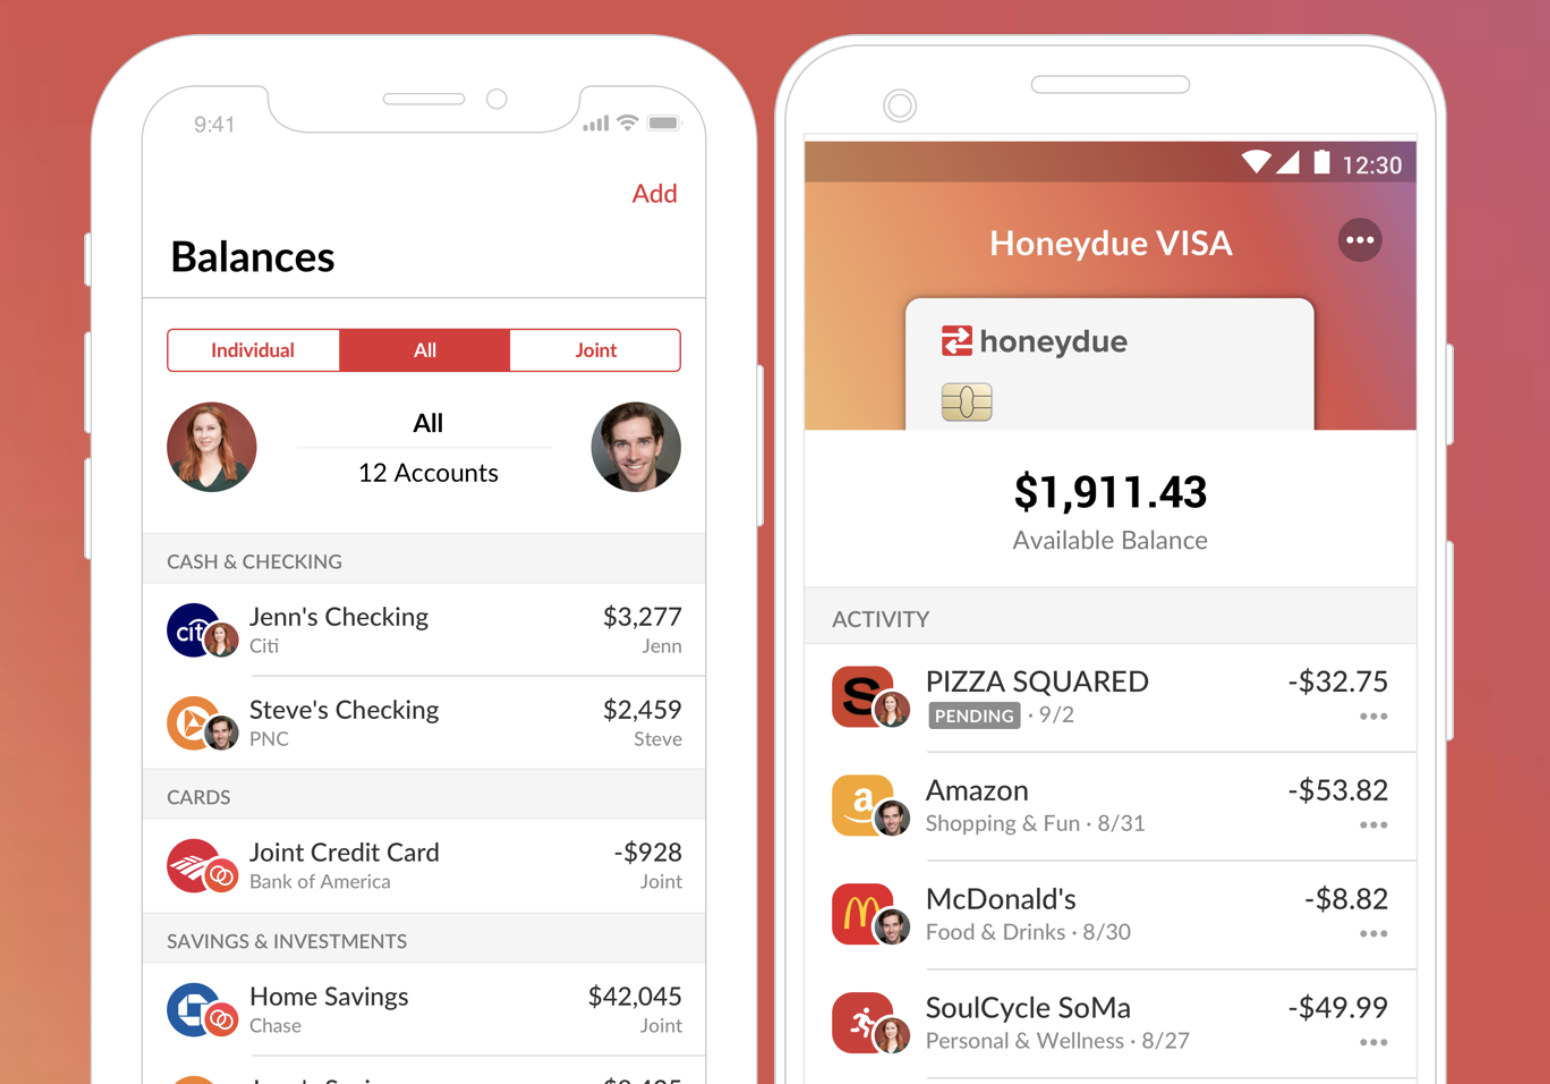 Screenshots of the app showing personal and joint accounts